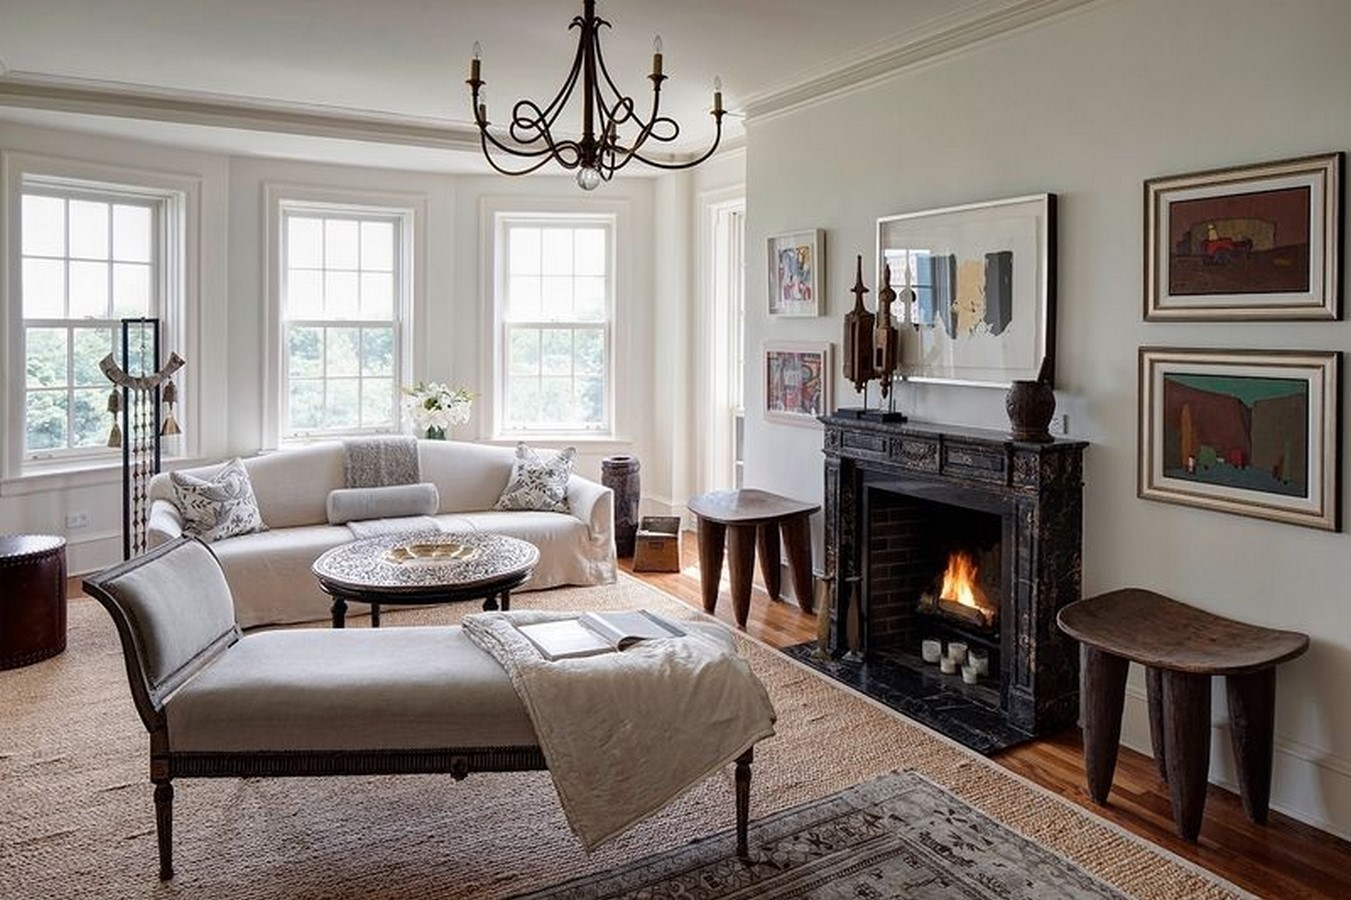 30 Examples of Rustic interiors for living rooms - Sheet11